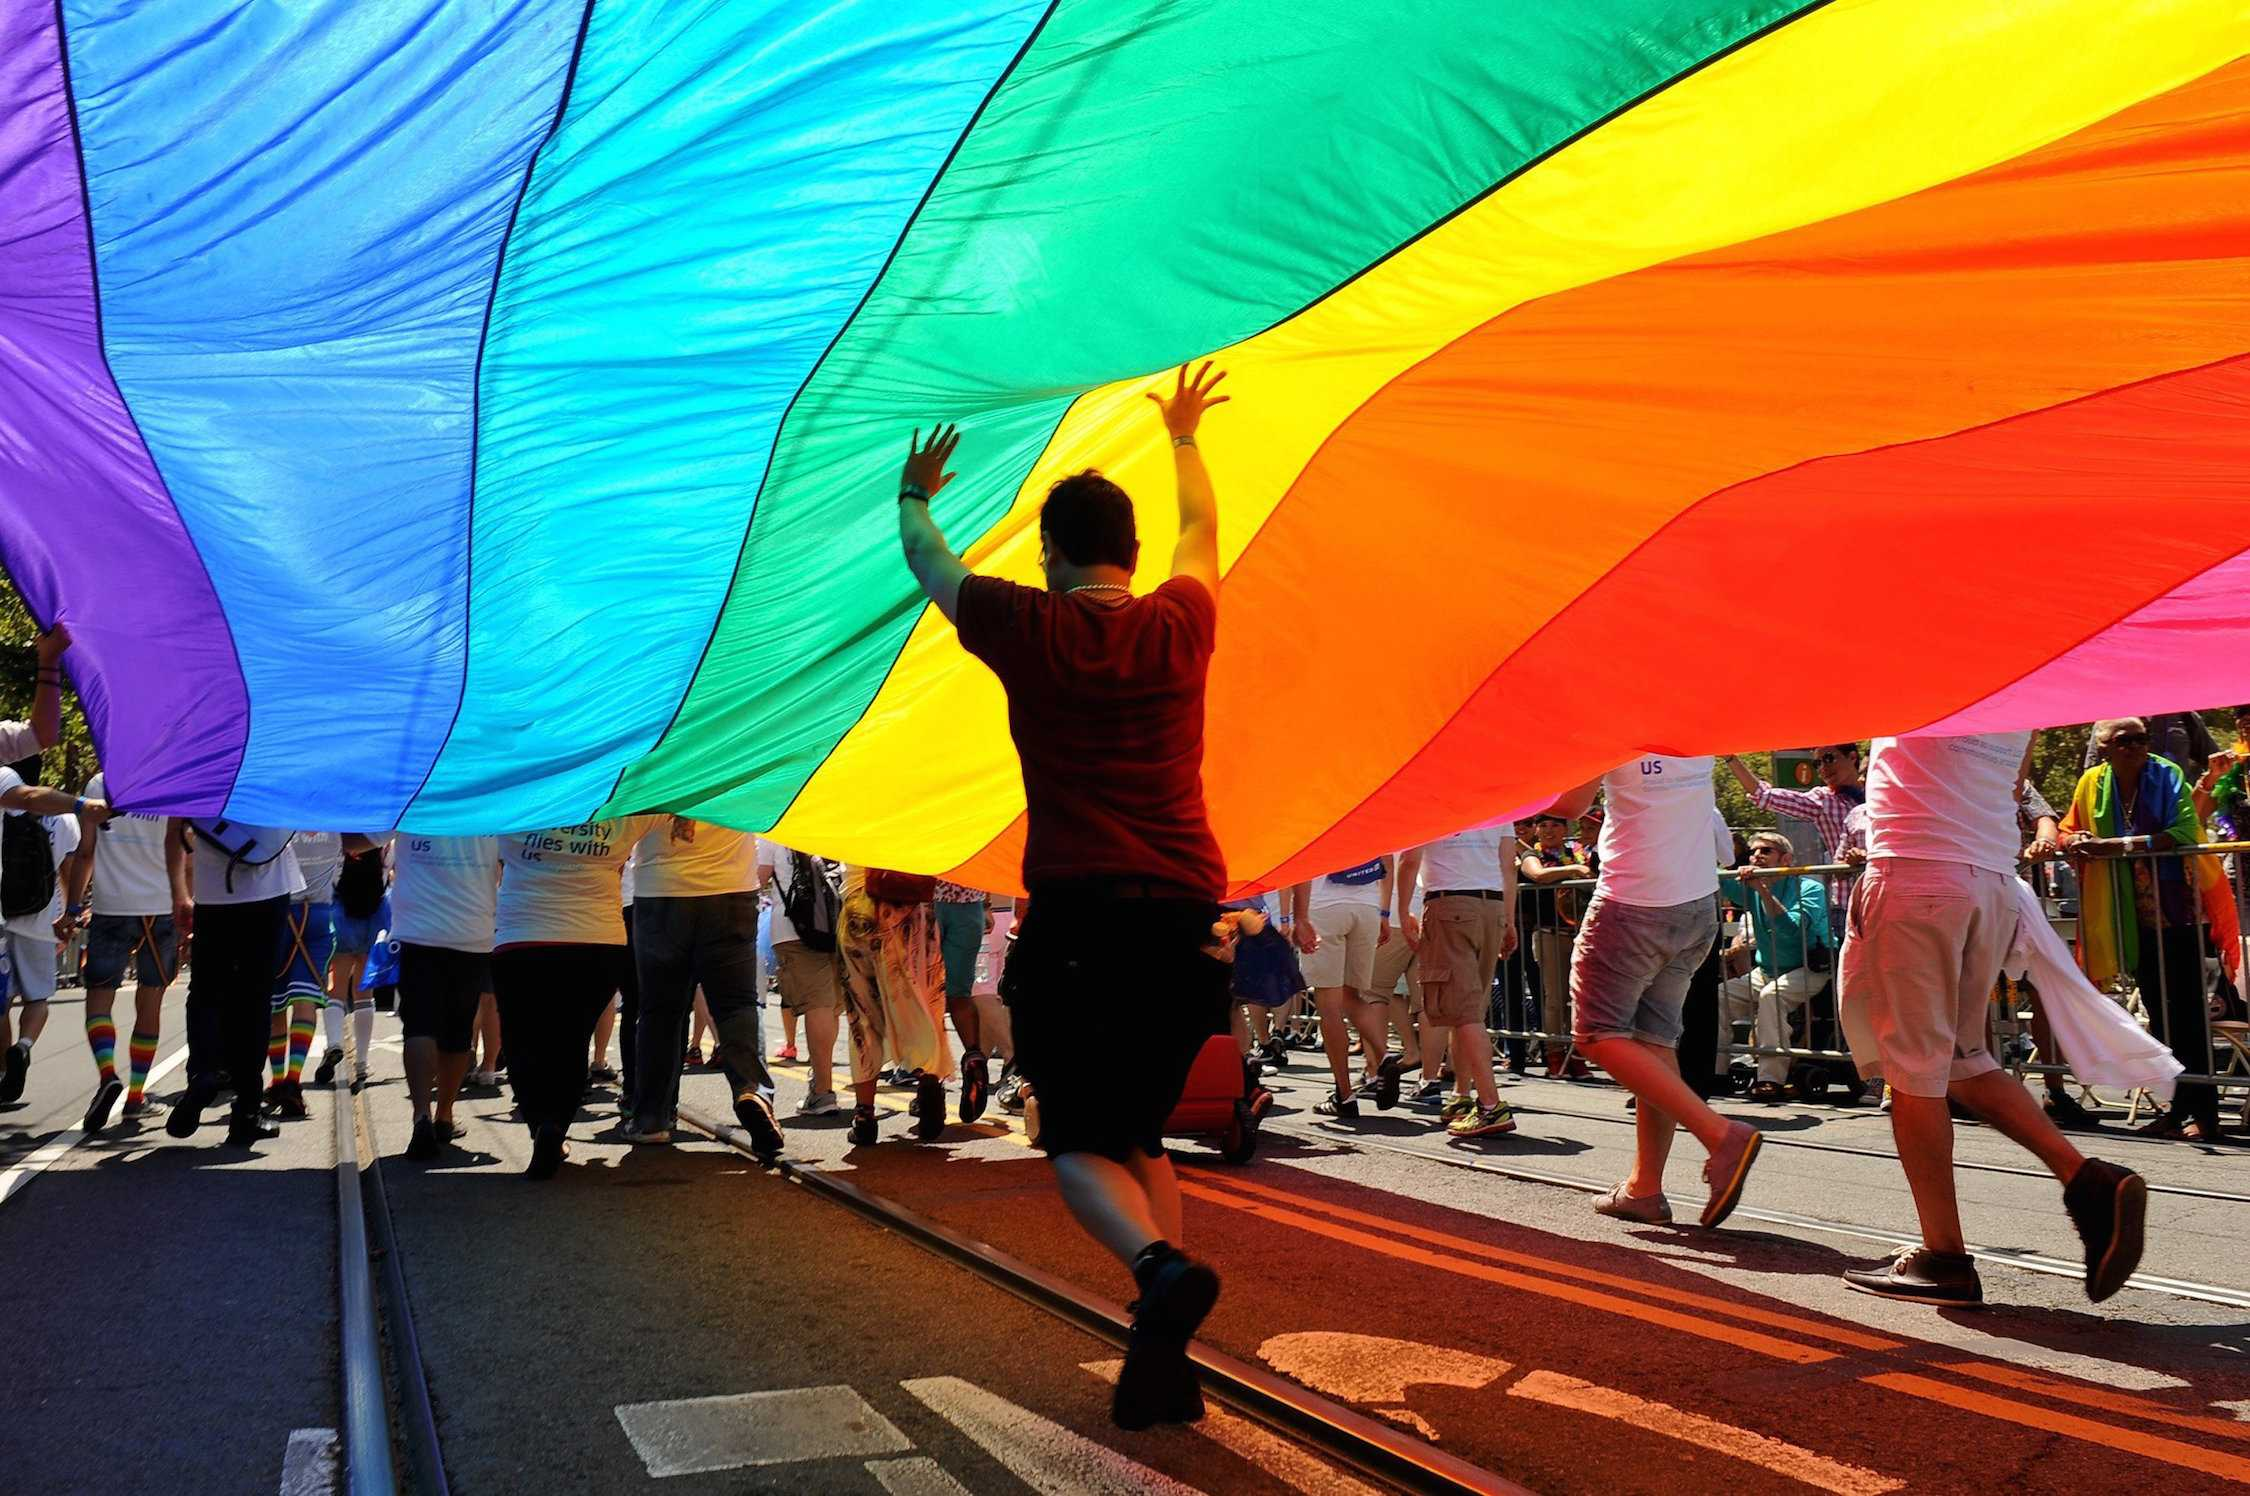 U.S. Supreme Court legalizes gay marriage